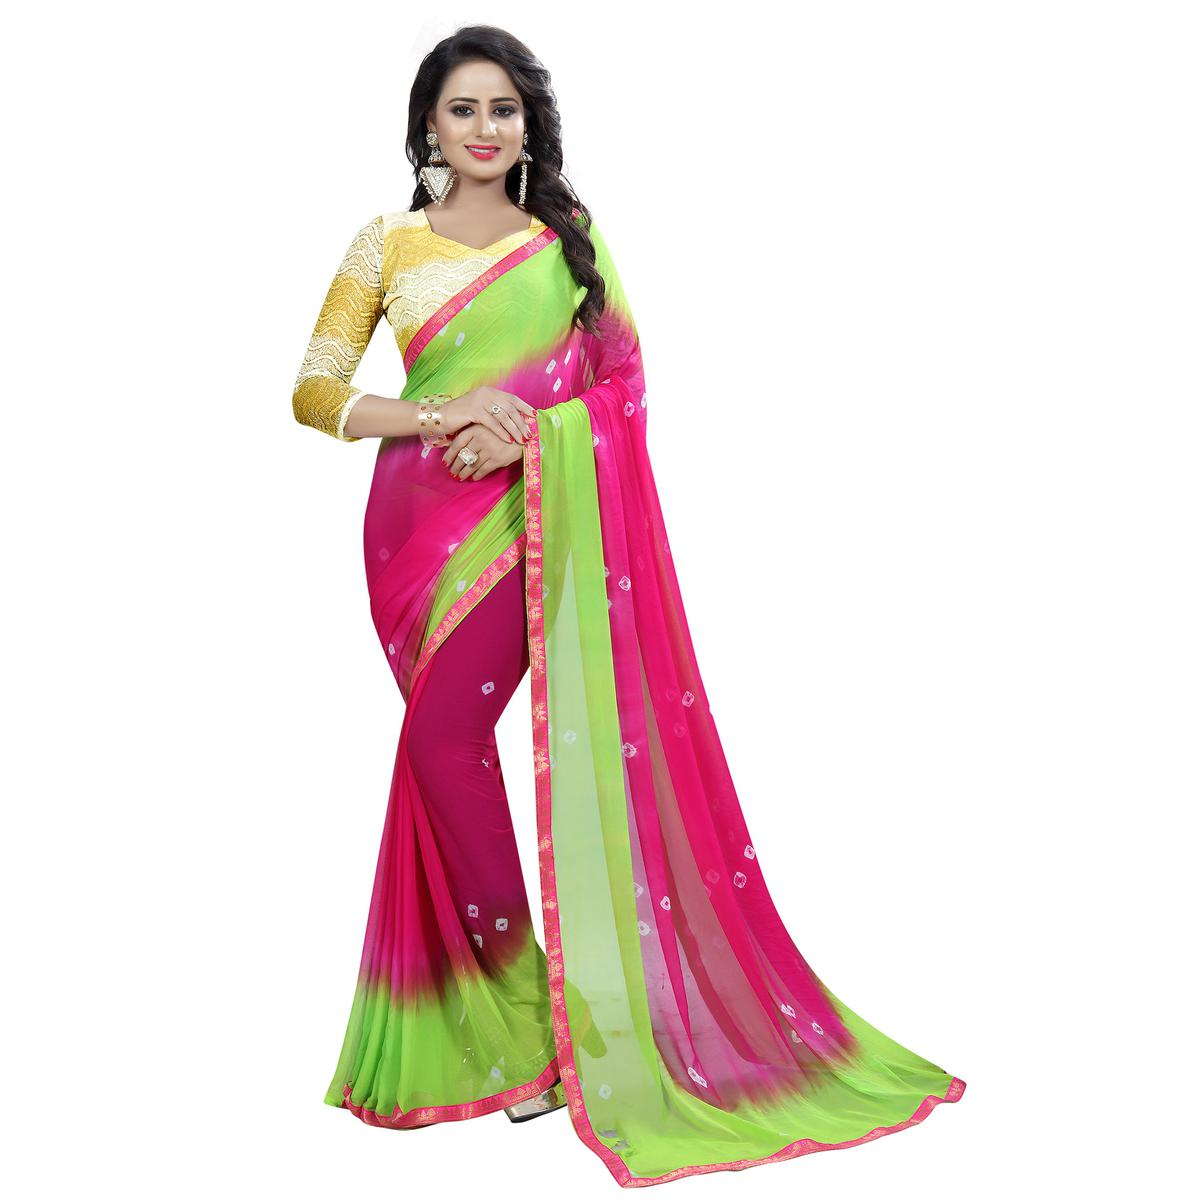 Classy Pink Colored Casual Printed Chiffon Saree